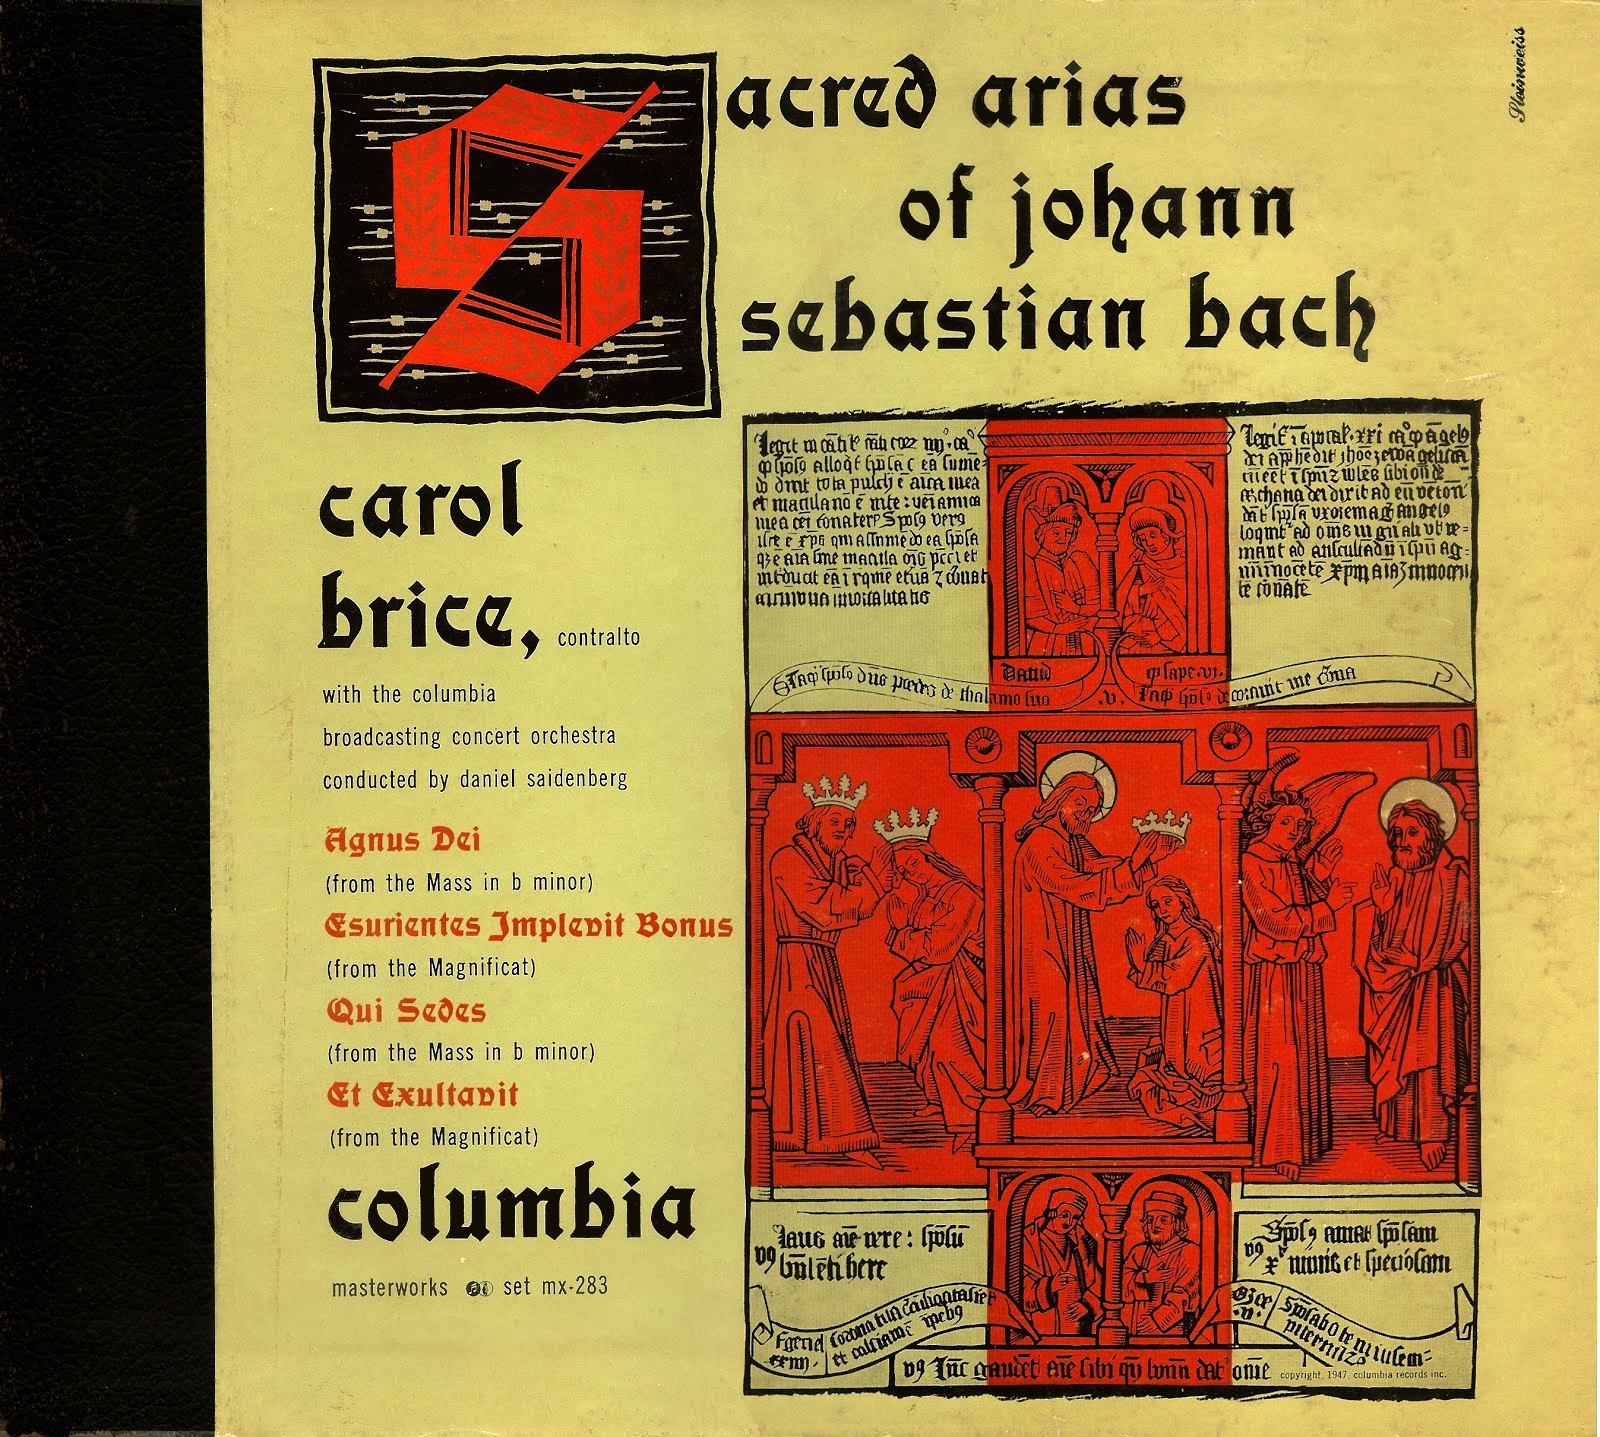 Recording: Sacred Arias of J.S. Bach